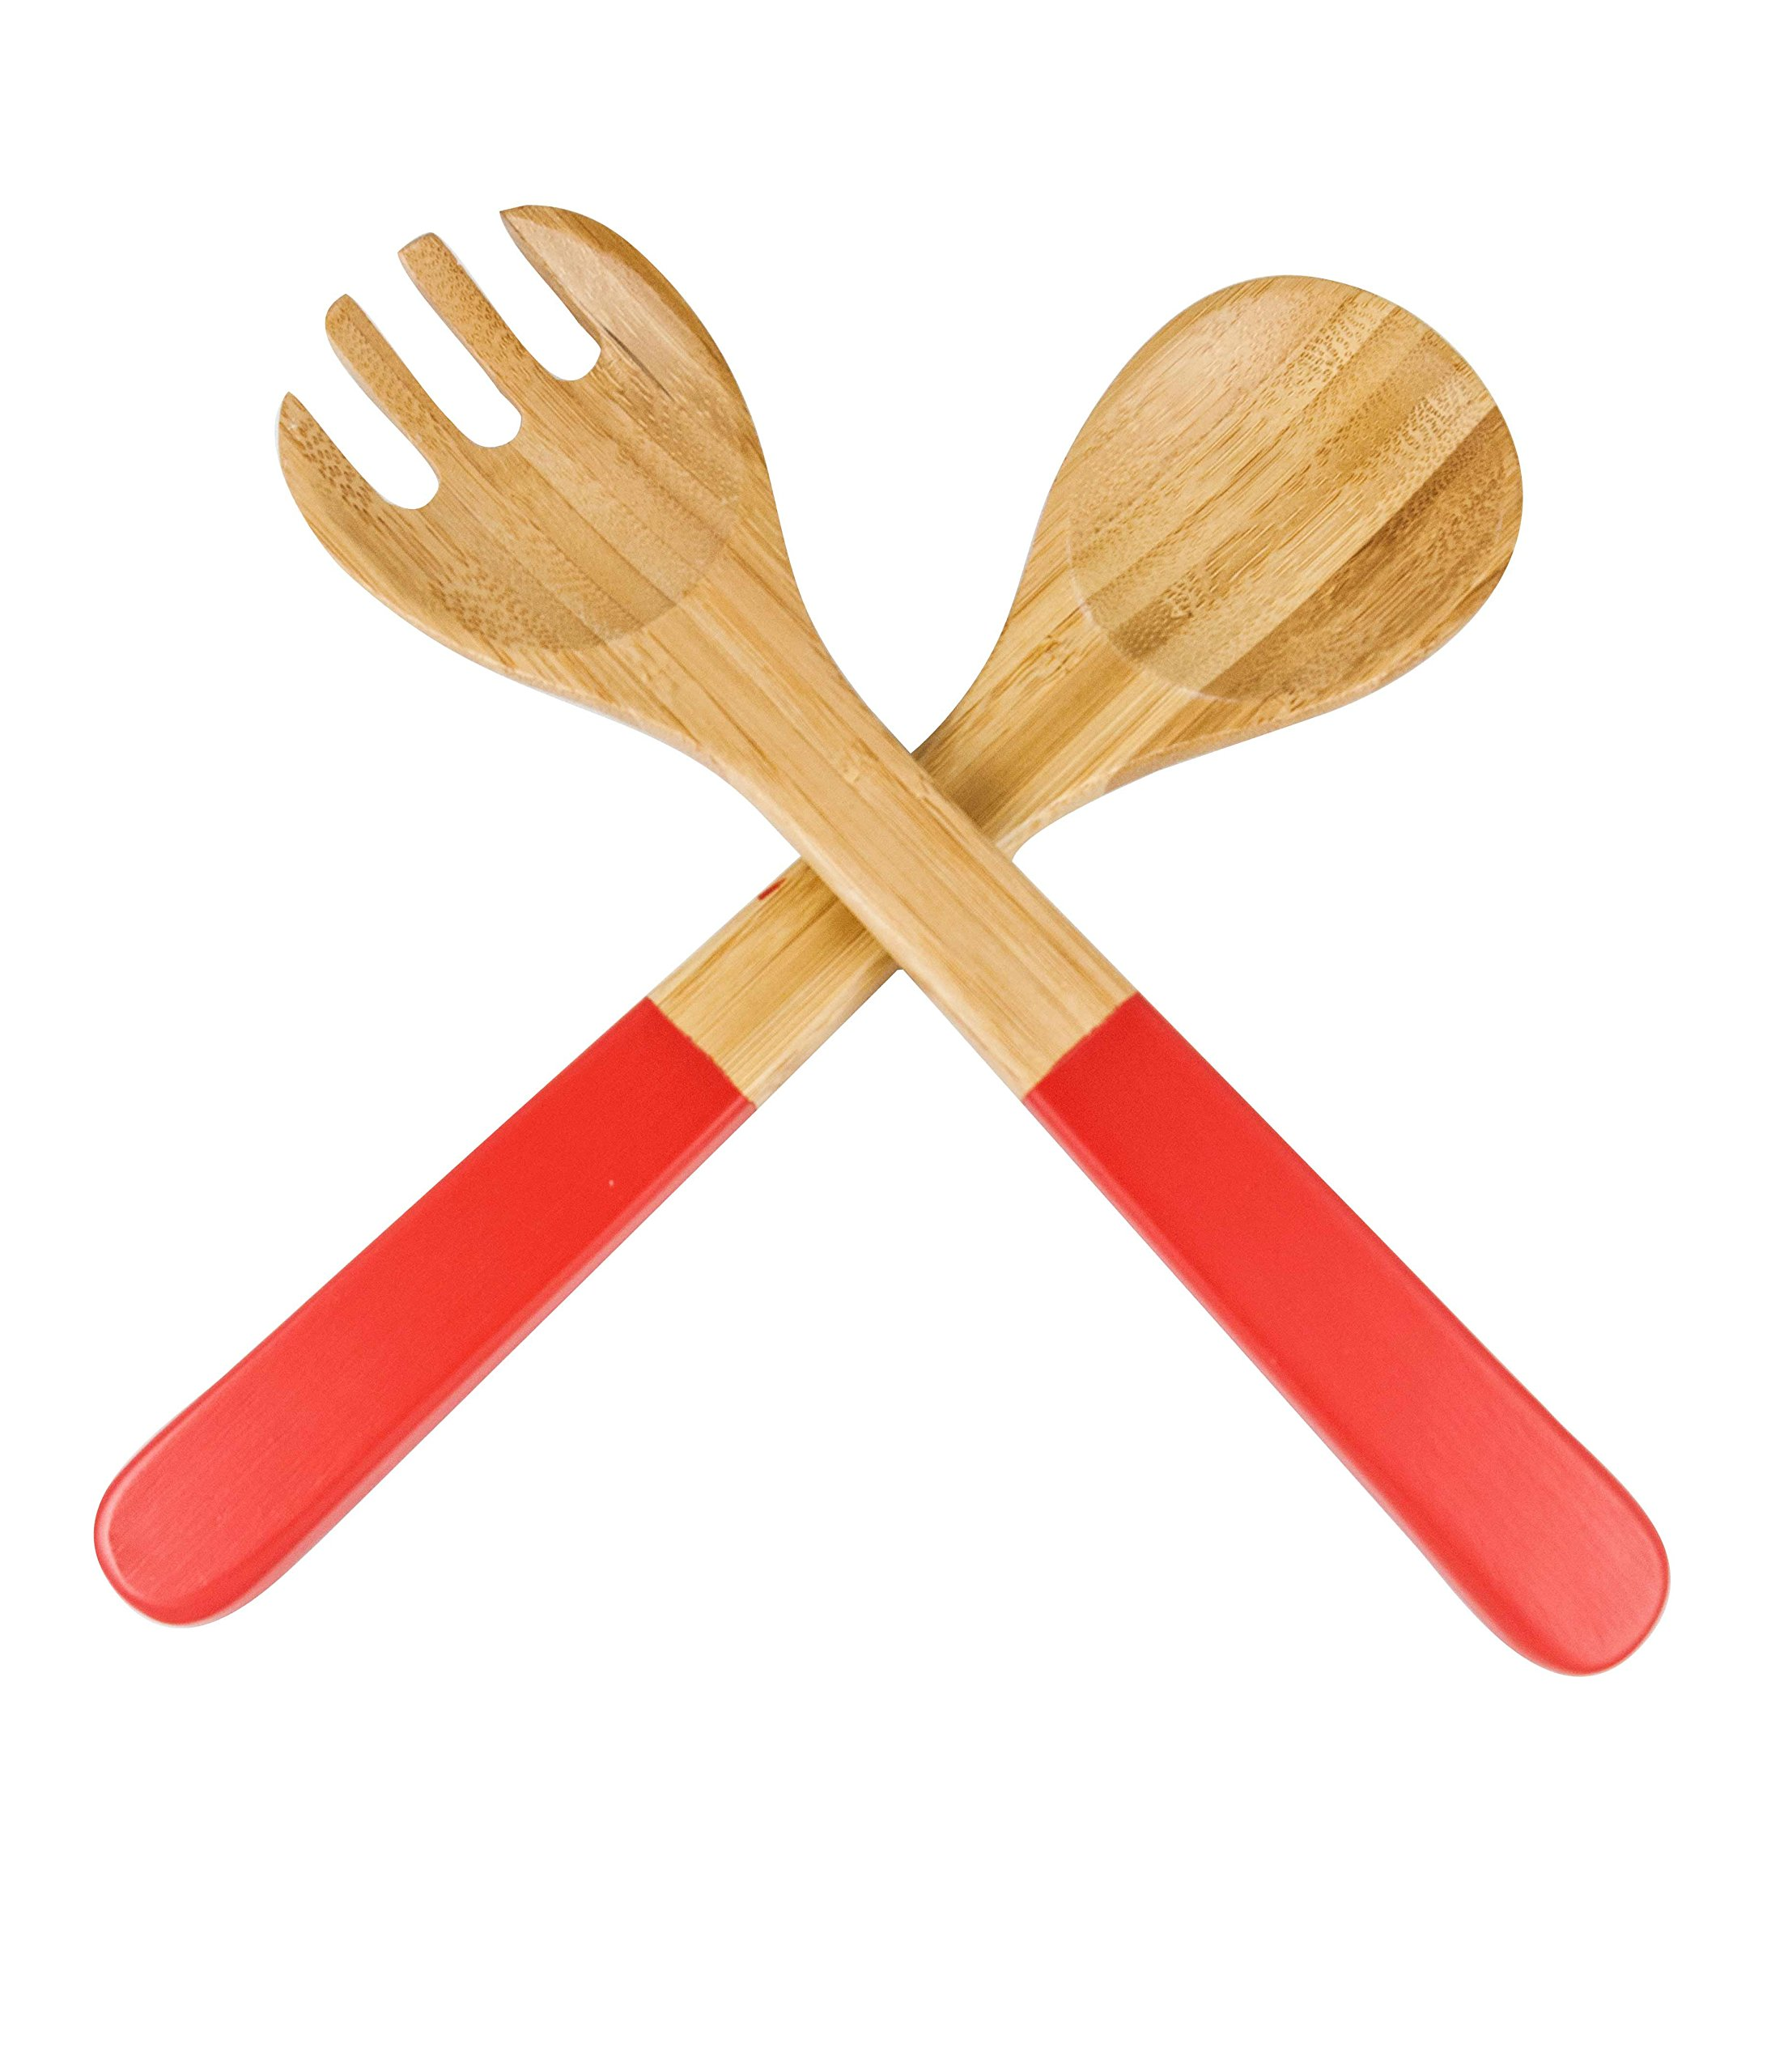 Core Bamboo Contemporary Salad Servers, Strawberry, 2-Pack